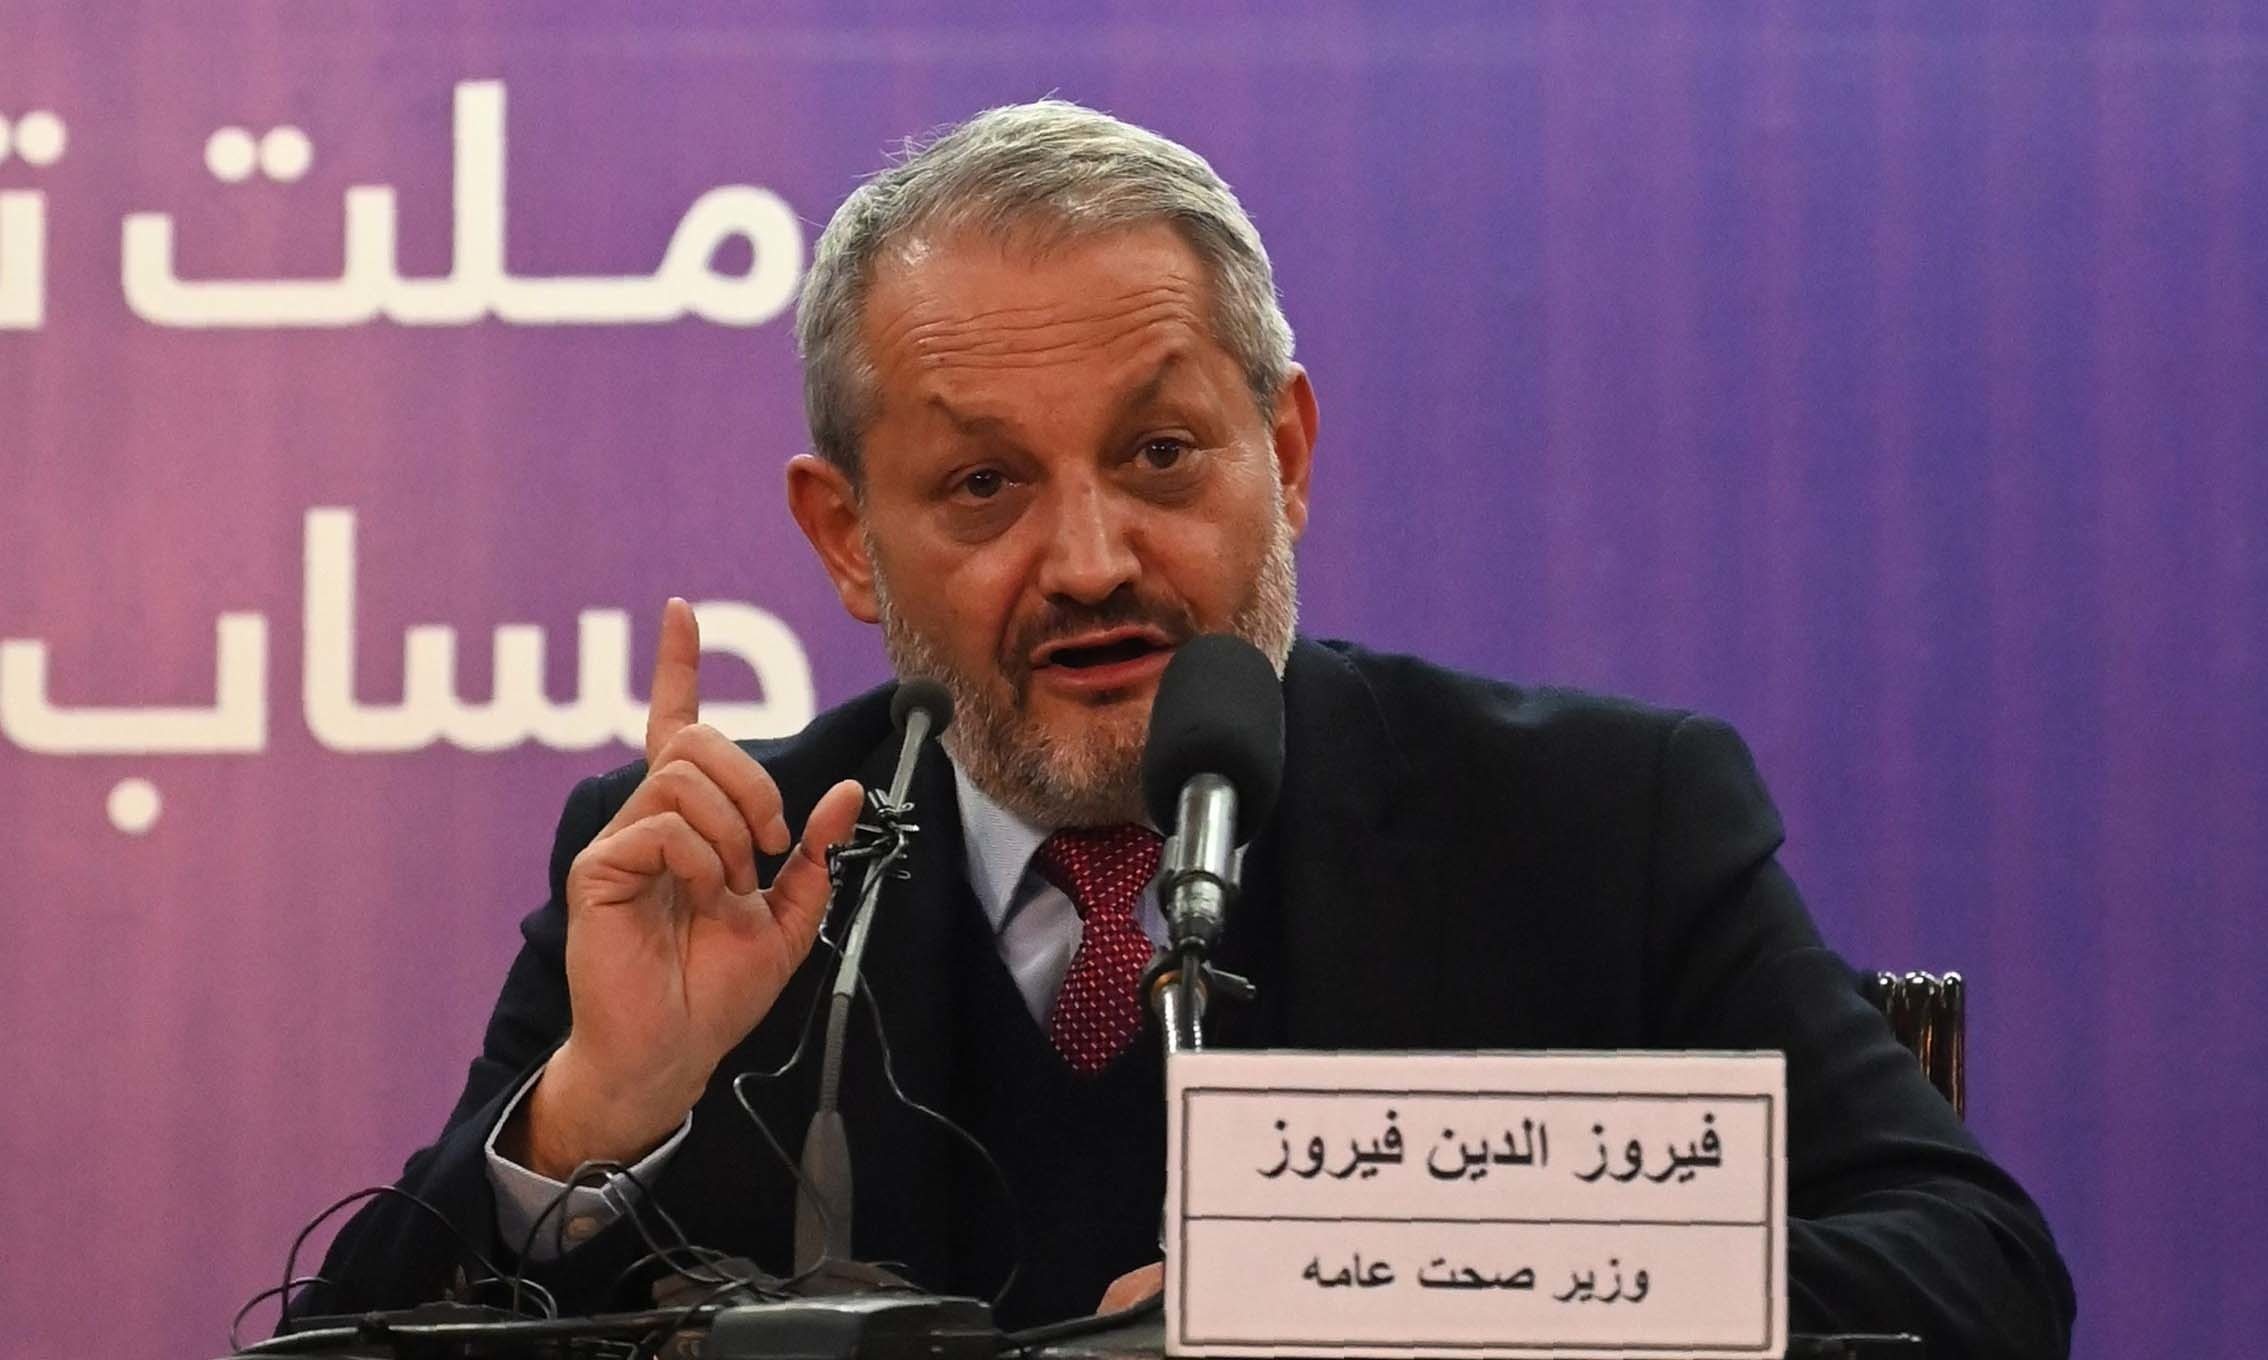 Afghanistan's Health Minister Ferozuddin Feroz speaks during a press conference in Kabul on February 24, 2020. — AFP/File